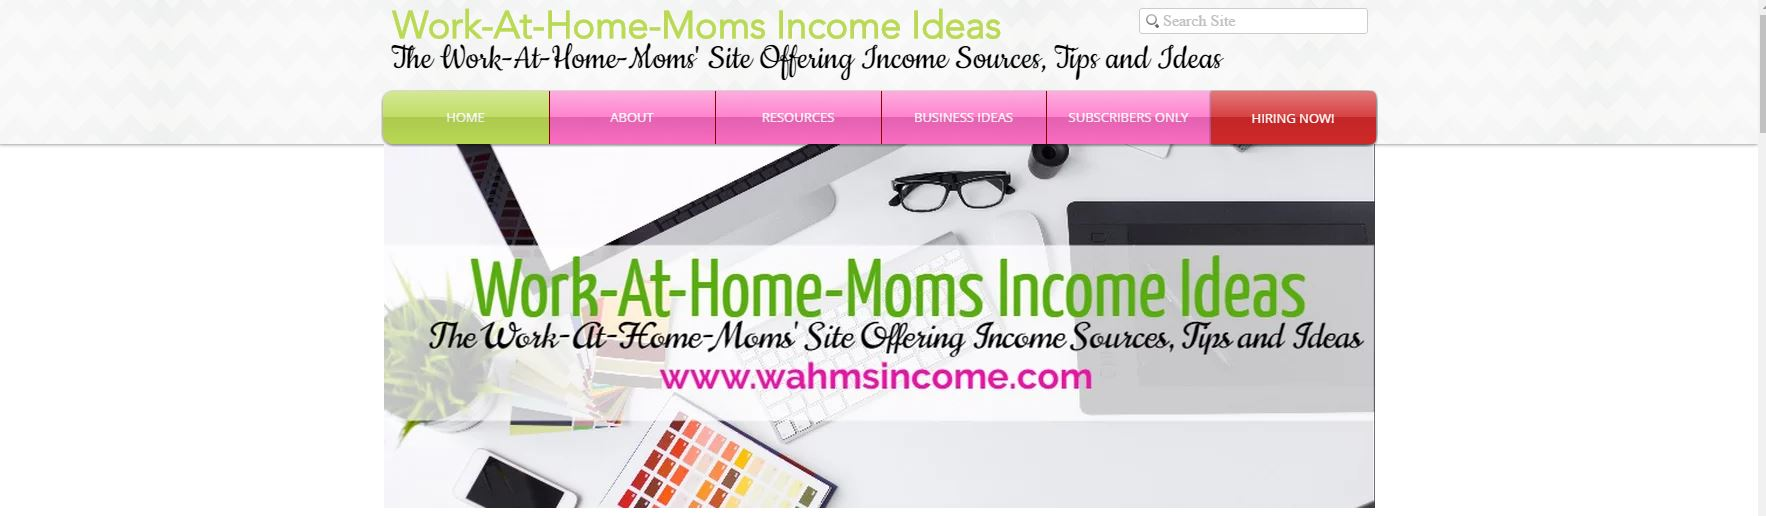 Work At Home Moms Income | wahmsincome.com | BLOG